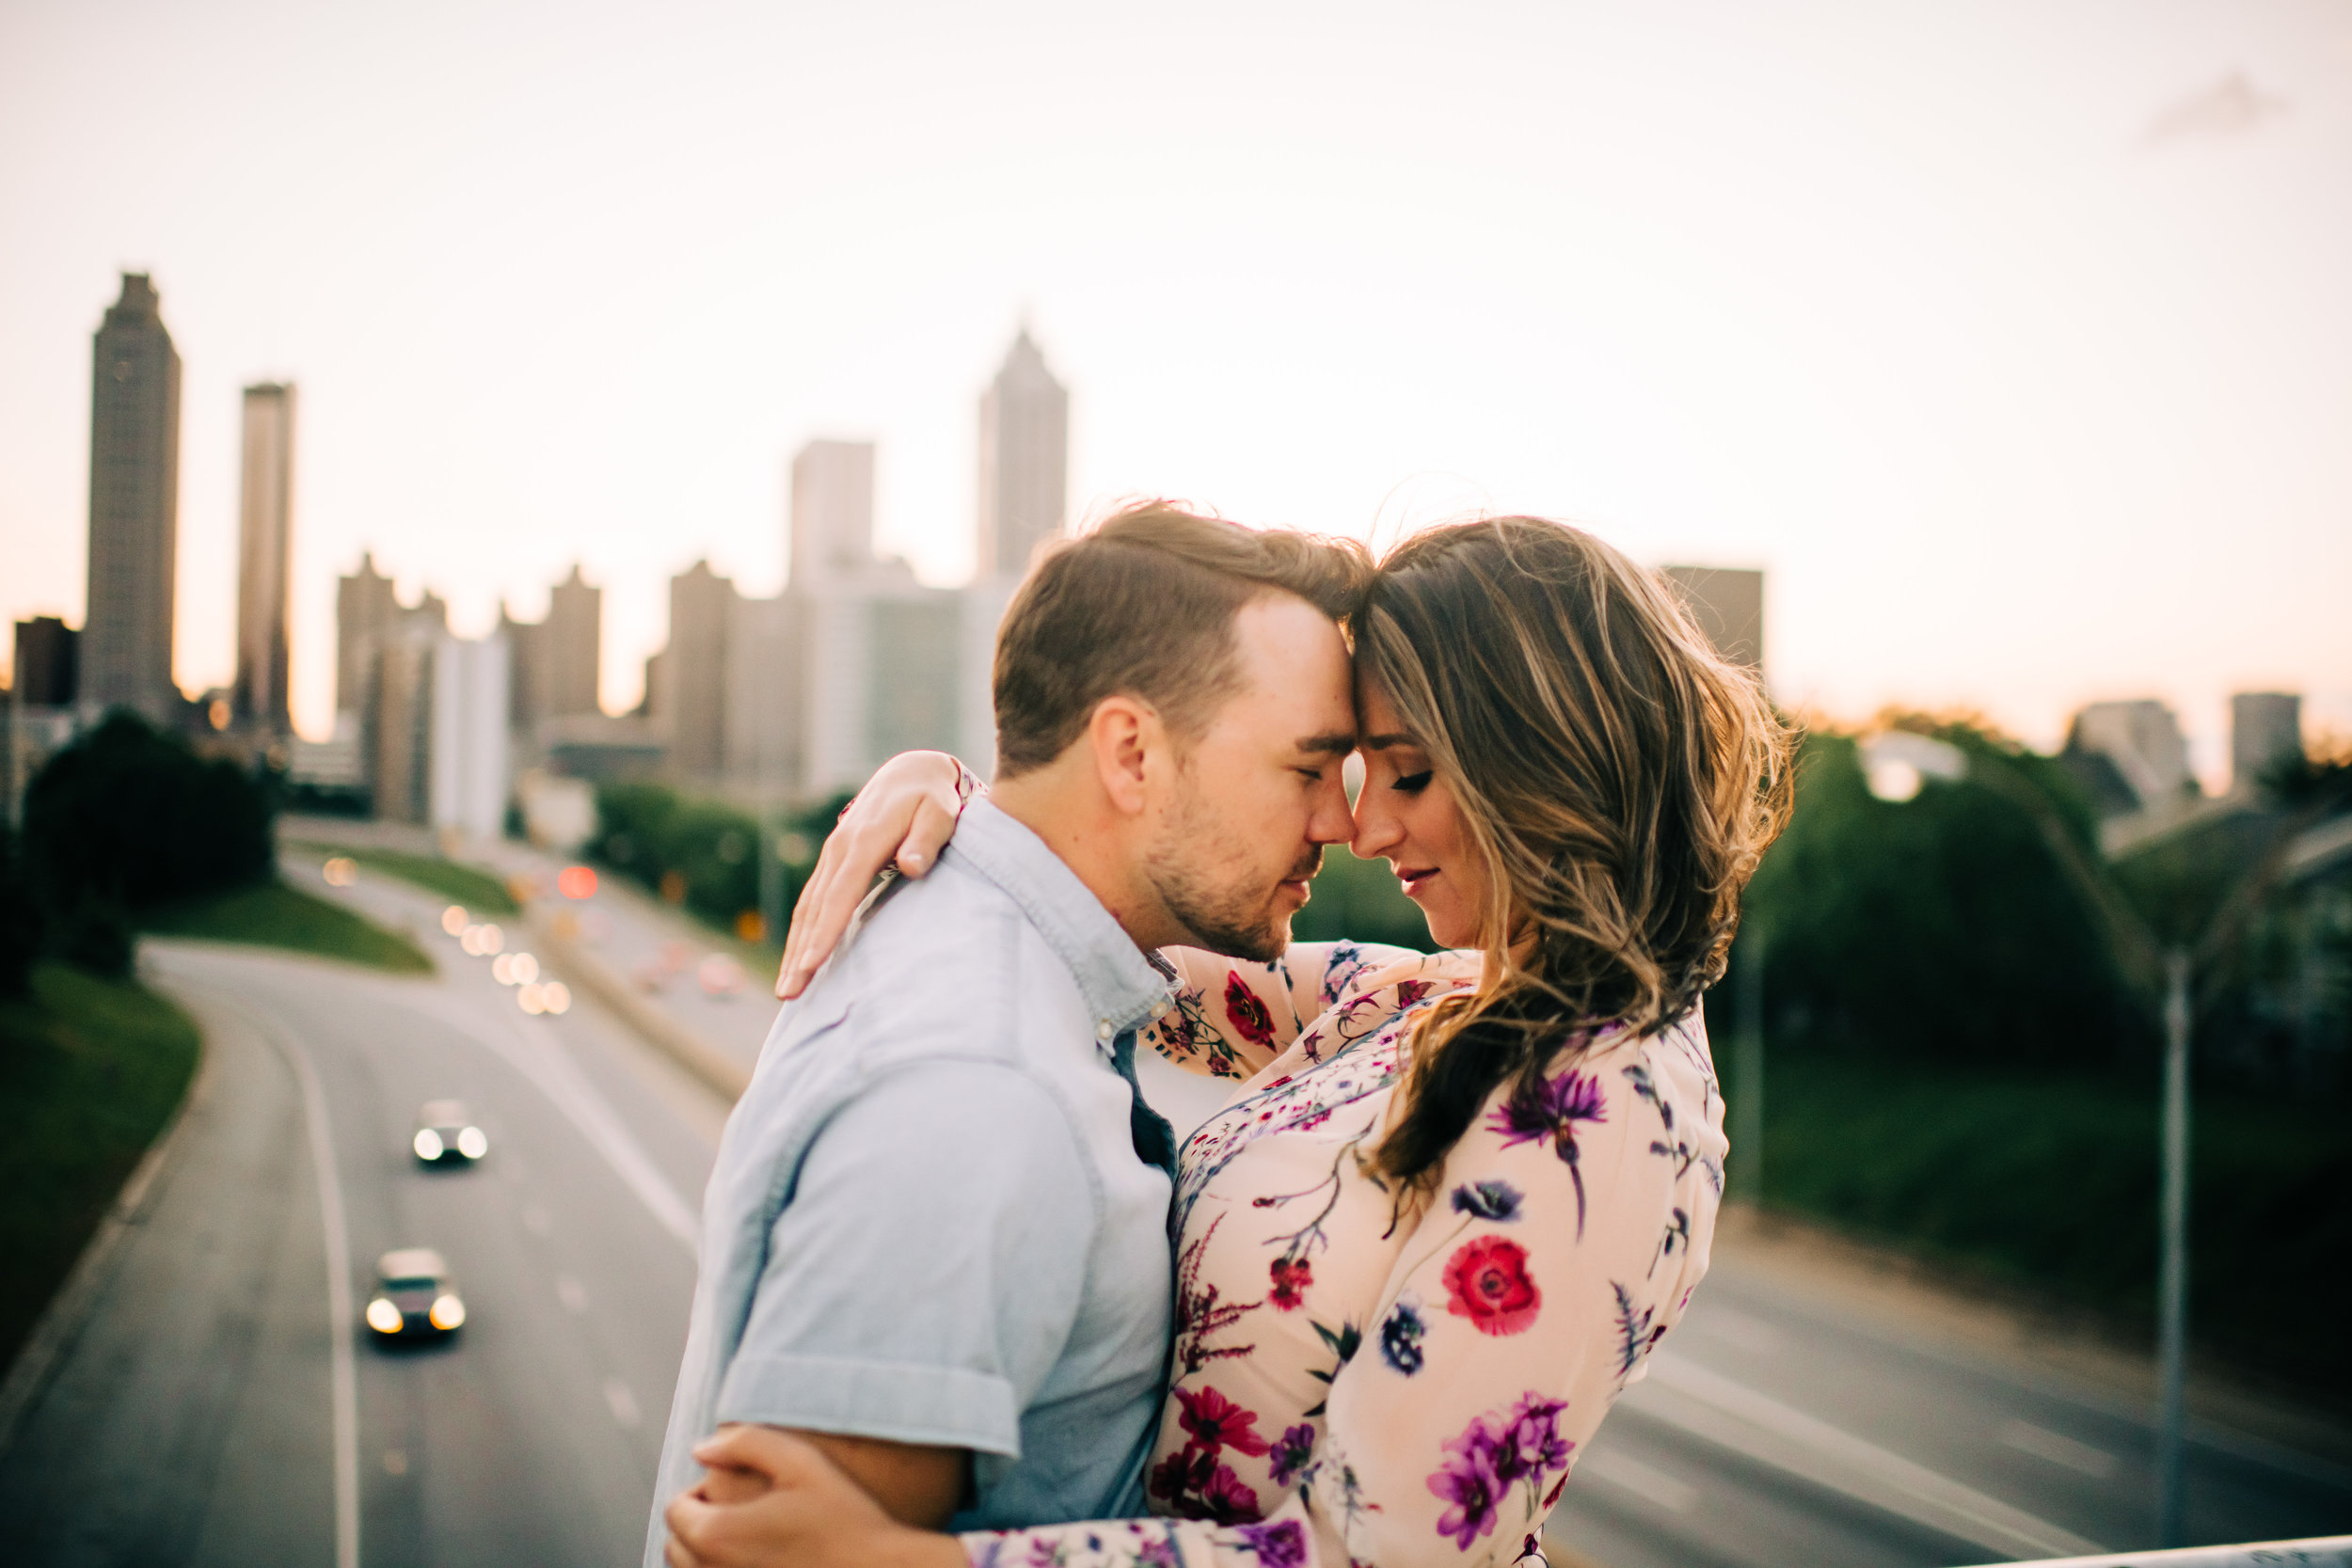 atlanta midtown cabbagetown jackson street bridge oakland san francisco engagement wedding nontraditional fun creative eclectic photographer magic-339.jpg